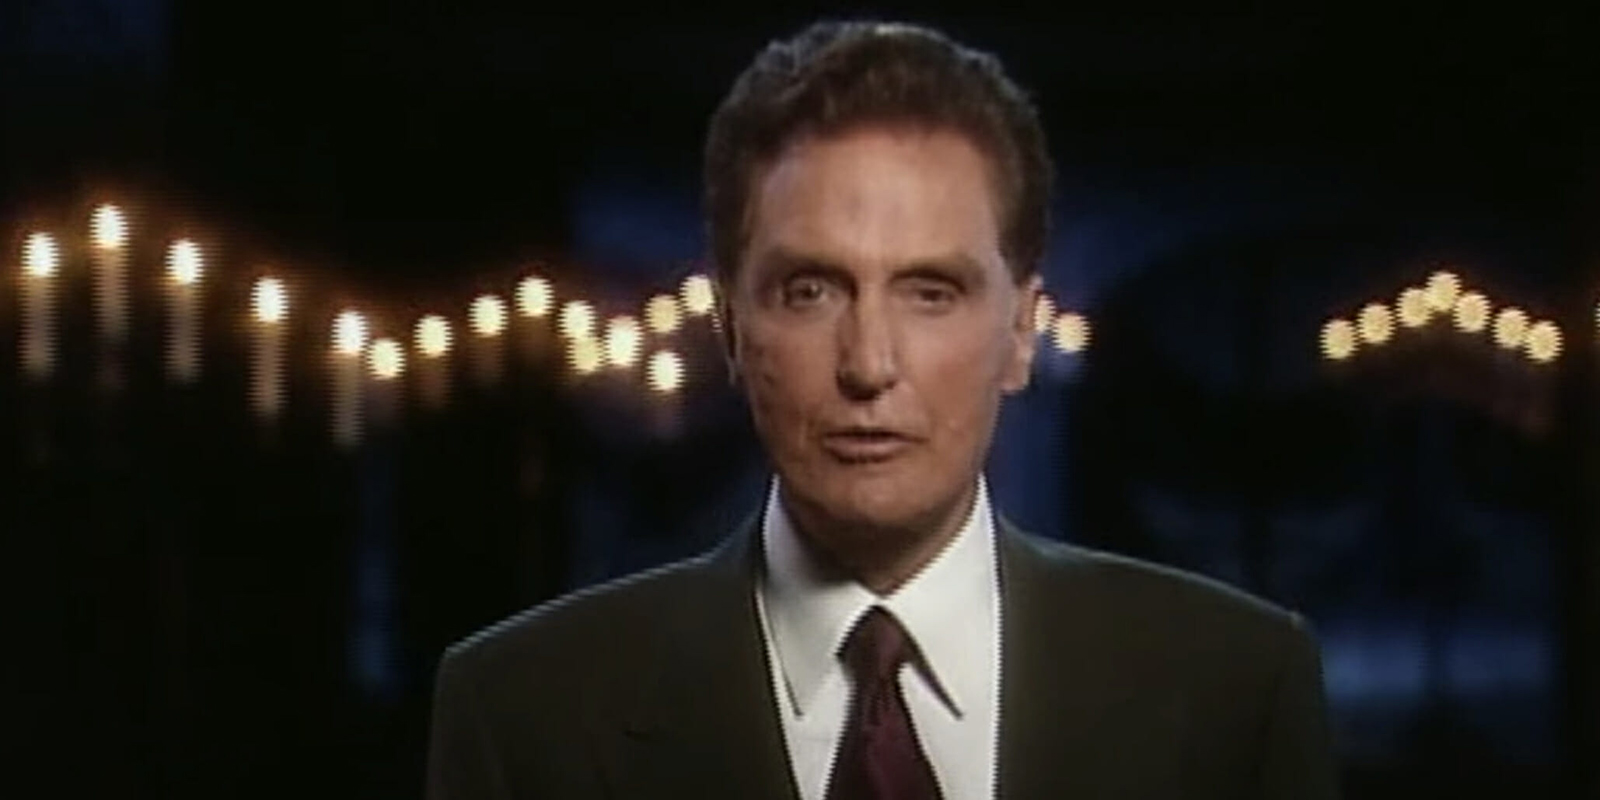 The classic show 'Unsolved Mysteries' has made its return thanks to a reimagining on Netflix. But if you liked the original, should you watch this?